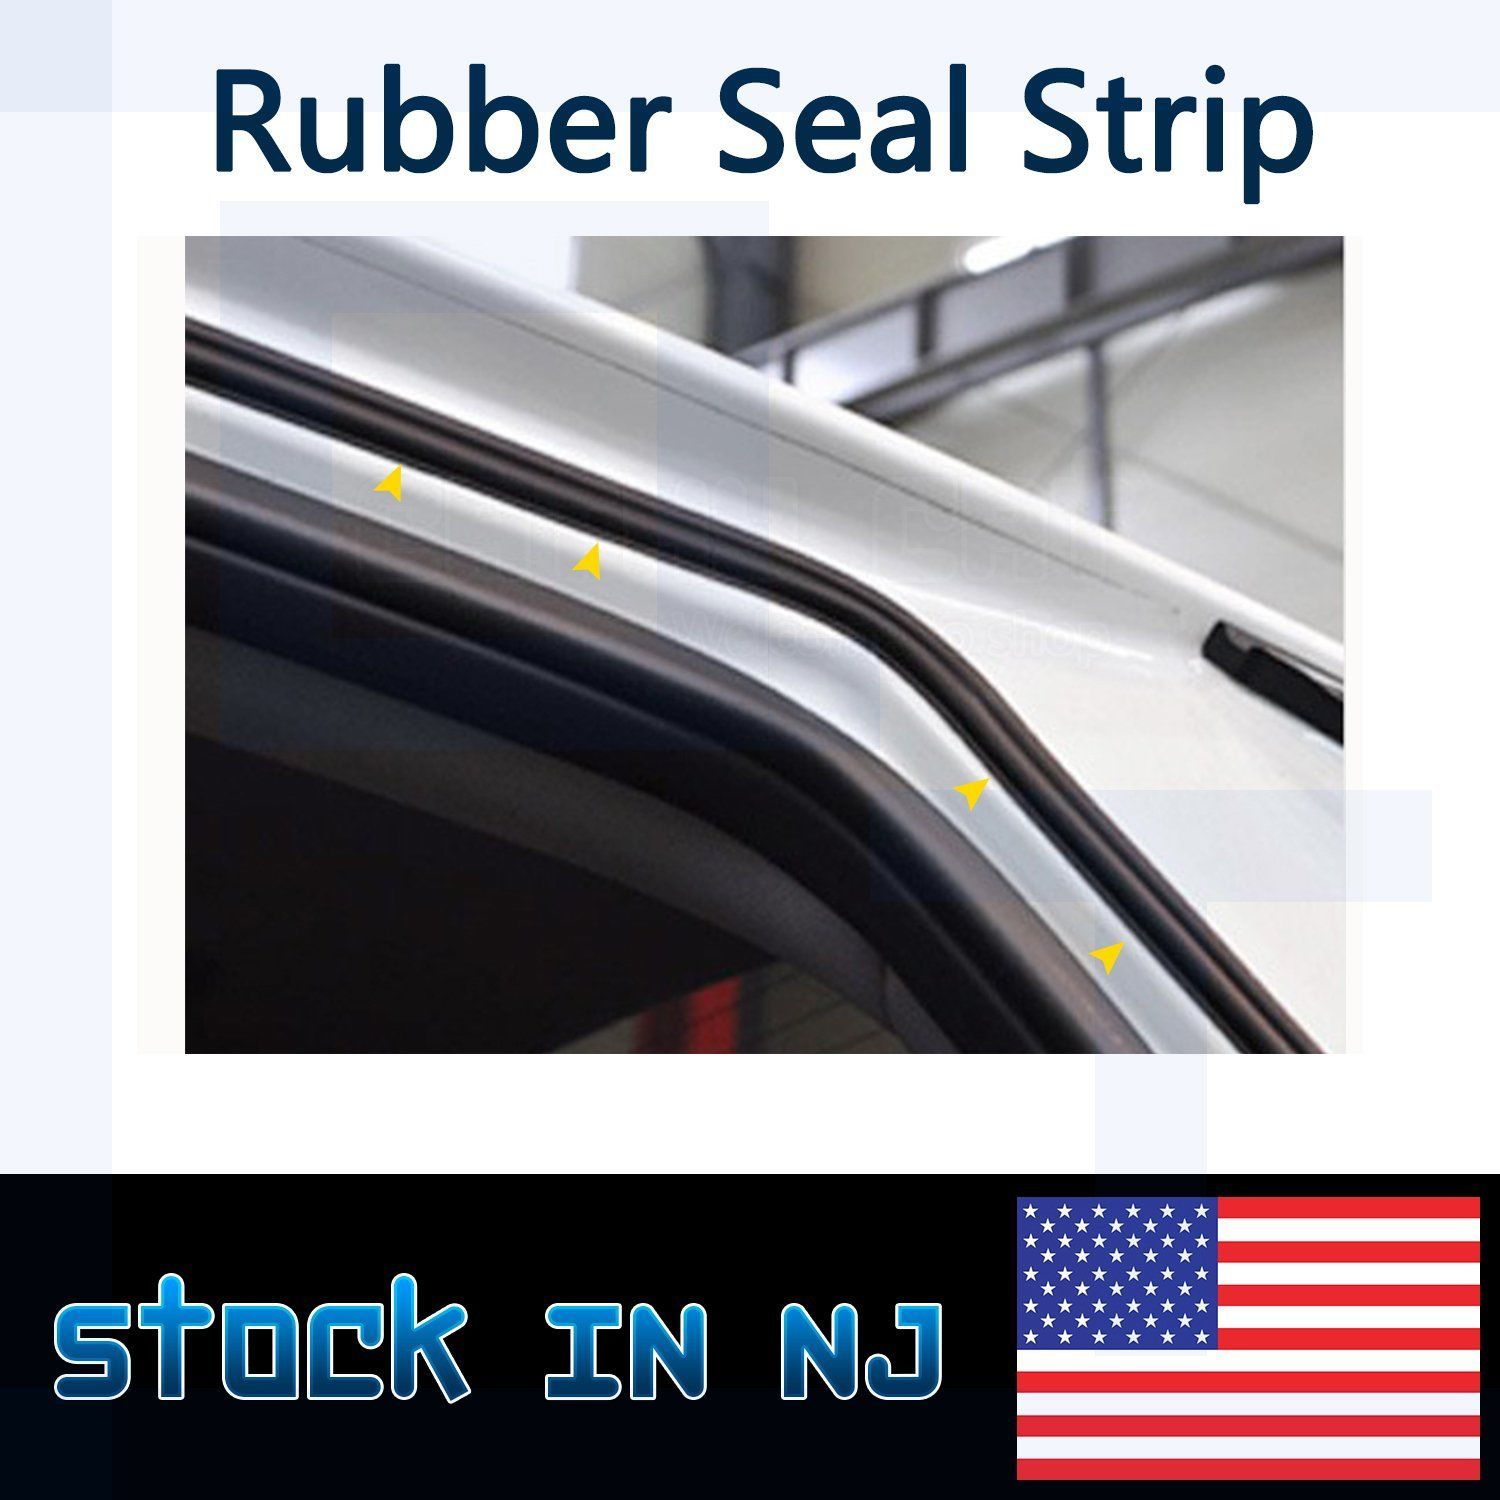 Rubber Seal Strip Great Rubber Seal Strip Lok Edge Trim 120 Car Door Edge Soundproof Protect 2018new 2017 2018